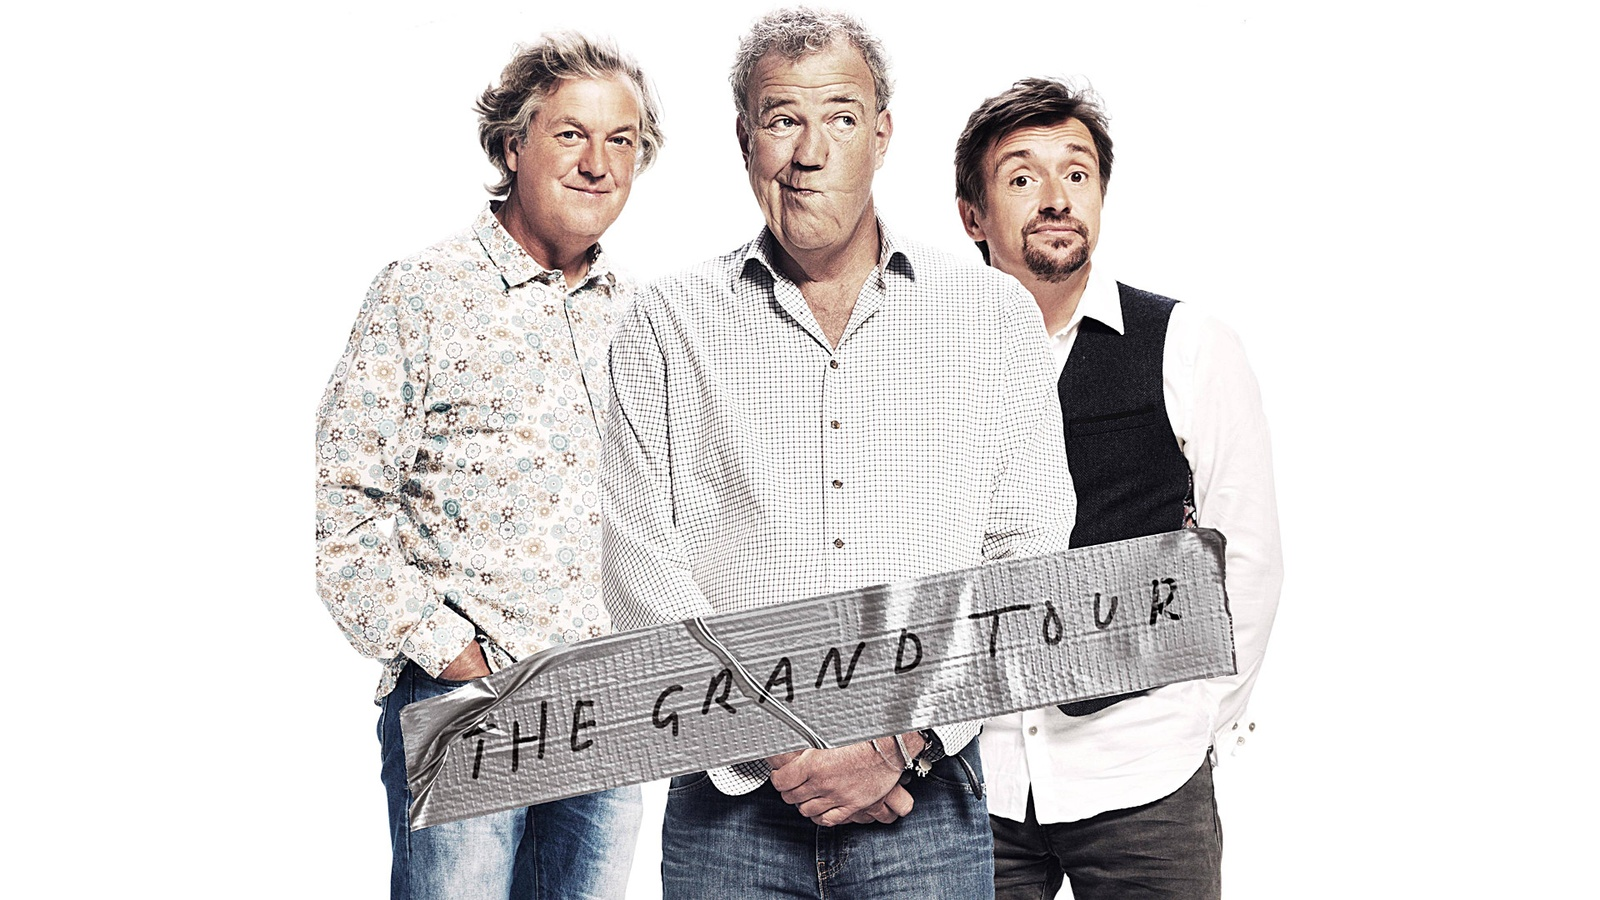 Гранд тур / The Grand Tour background